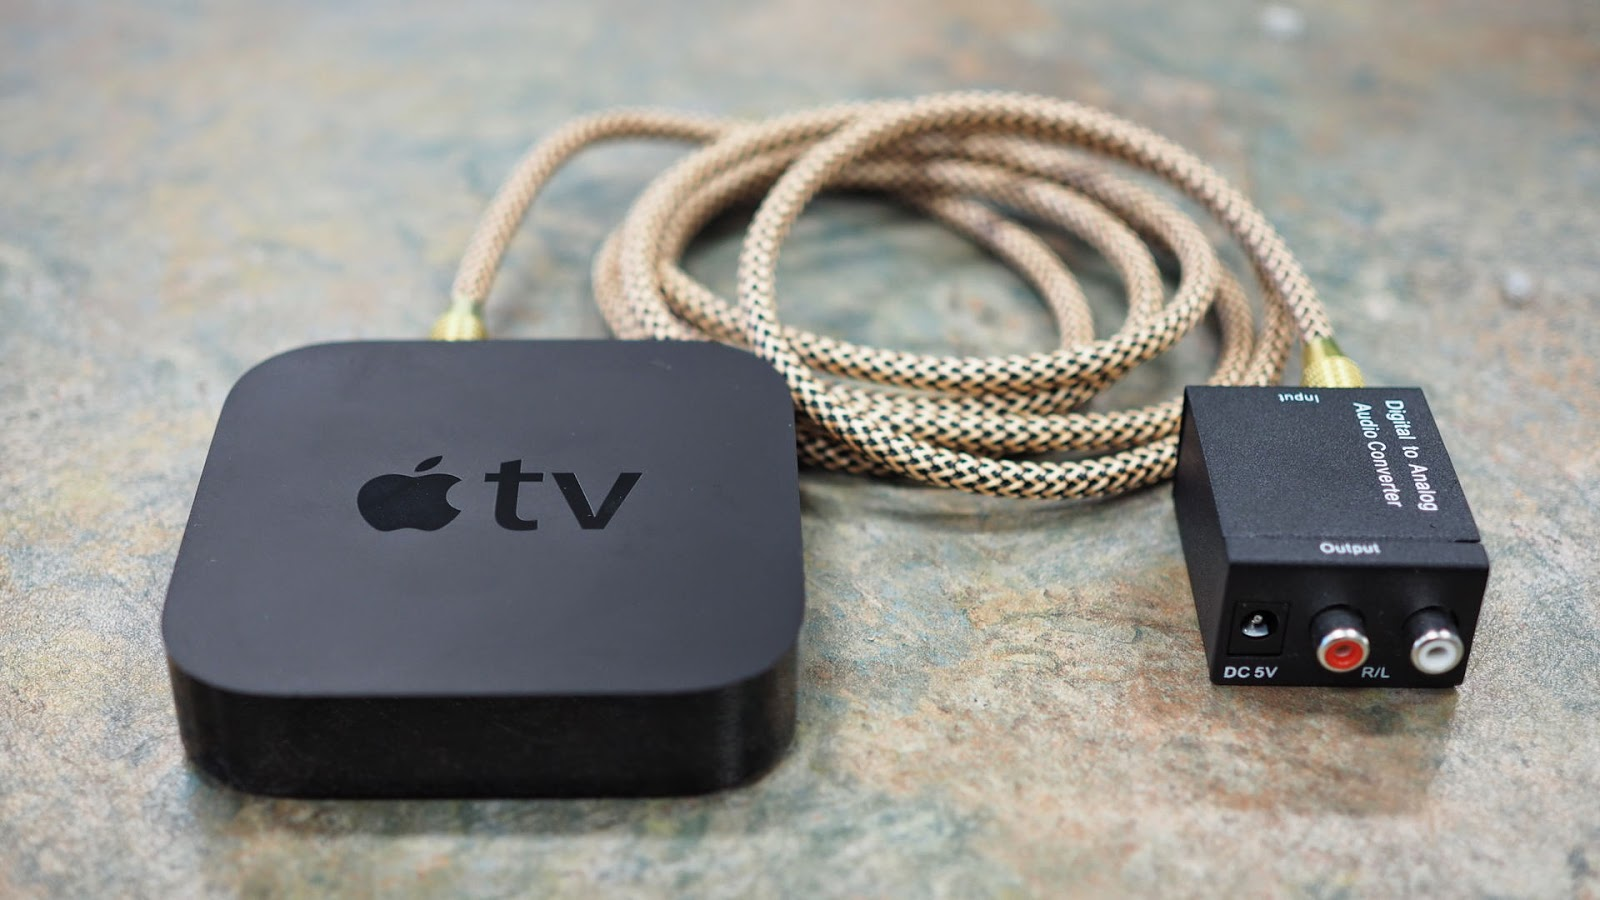 hight resolution of apple tv as hd av receiver with analog audio output